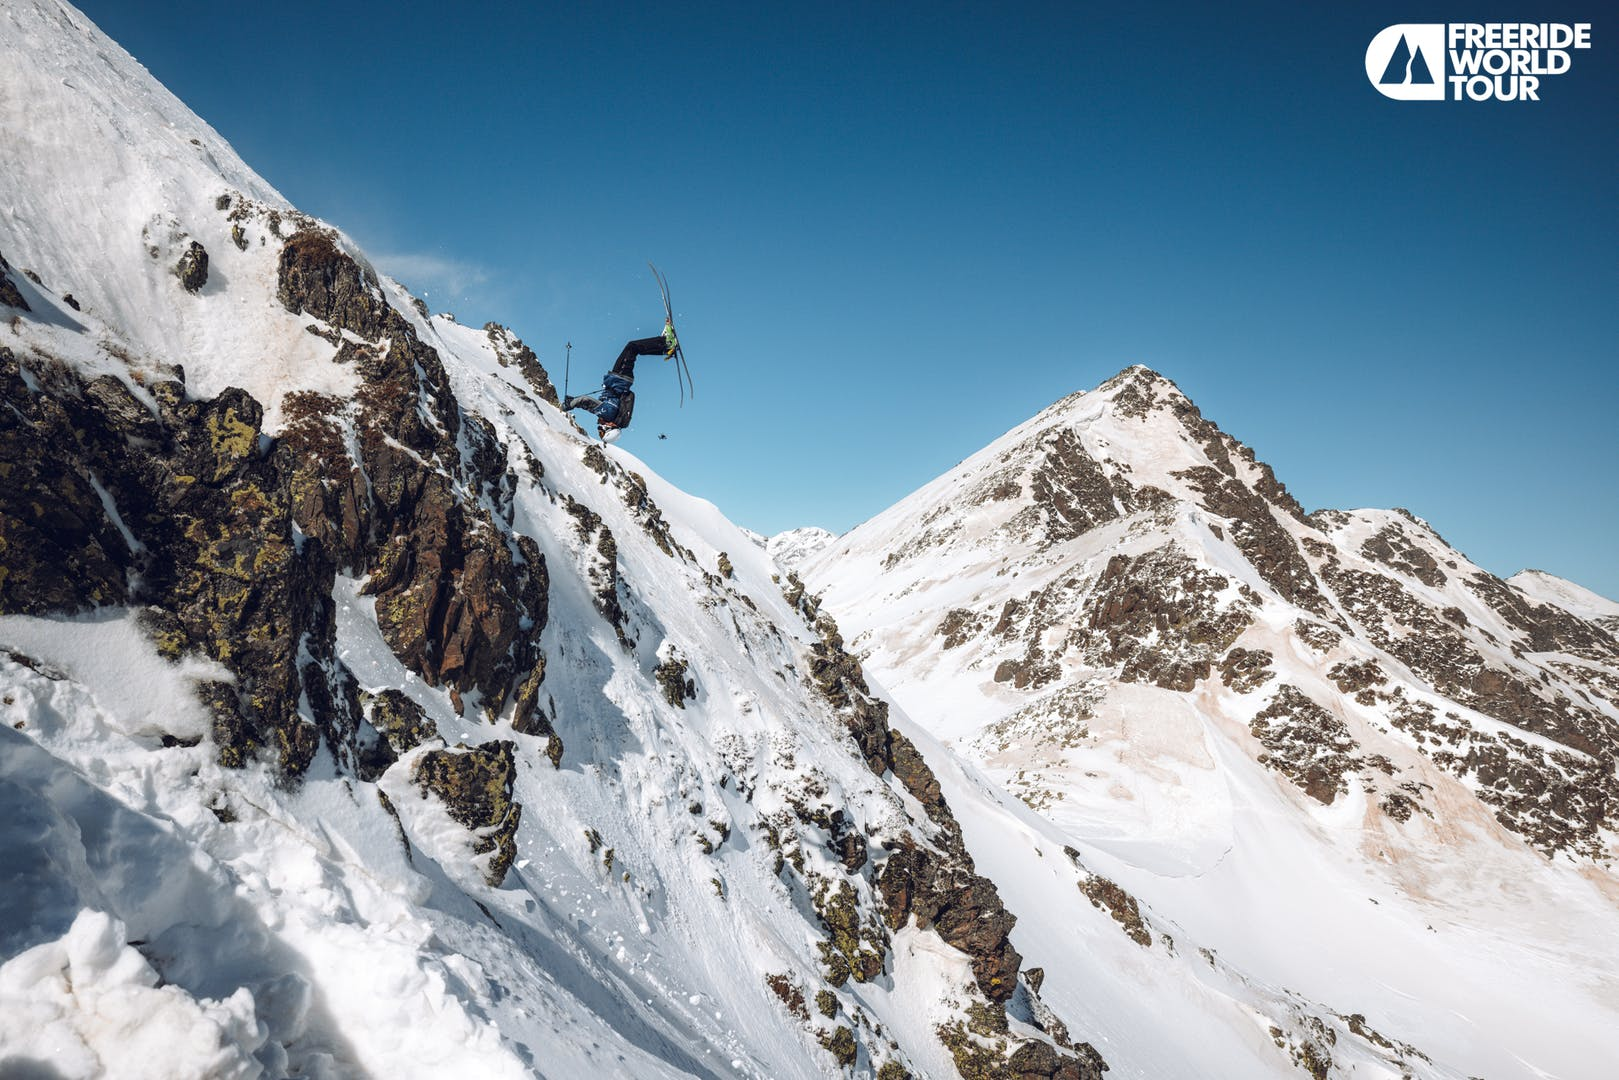 Isaac backflipping a cliff during the Ordino-Arcalis FWT stop